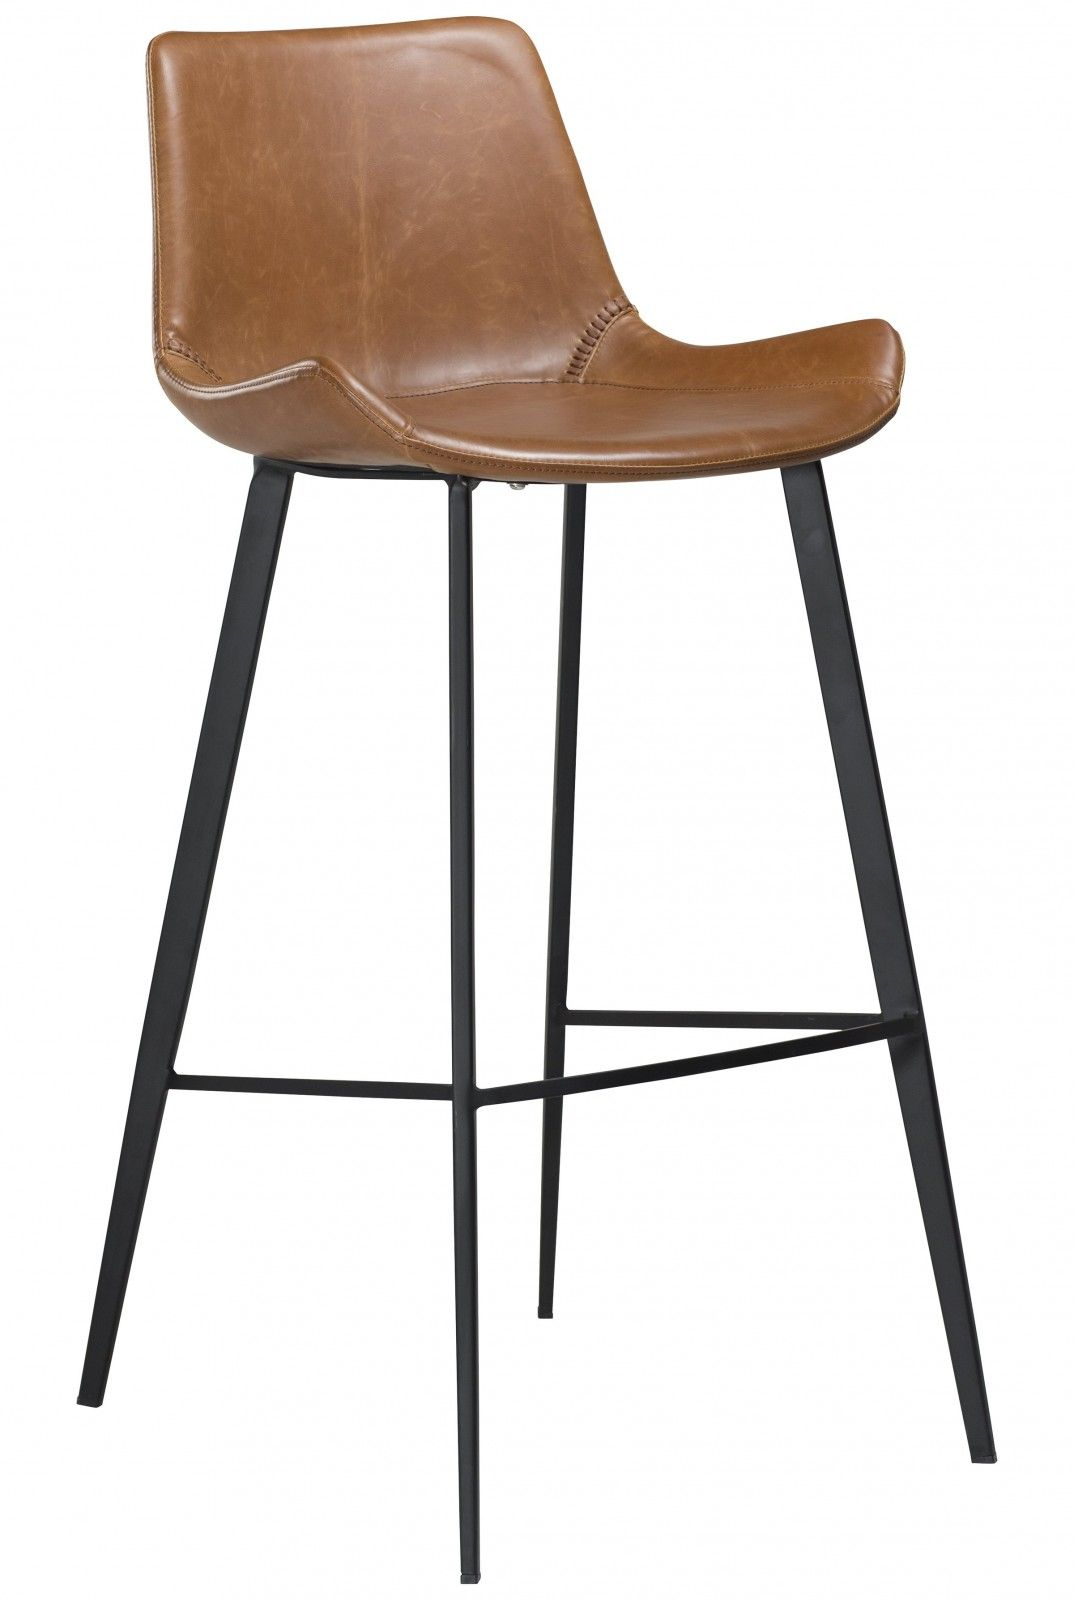 Barsessel Leder Barstuhl Leder Interesting A Rudin Bar Stools With